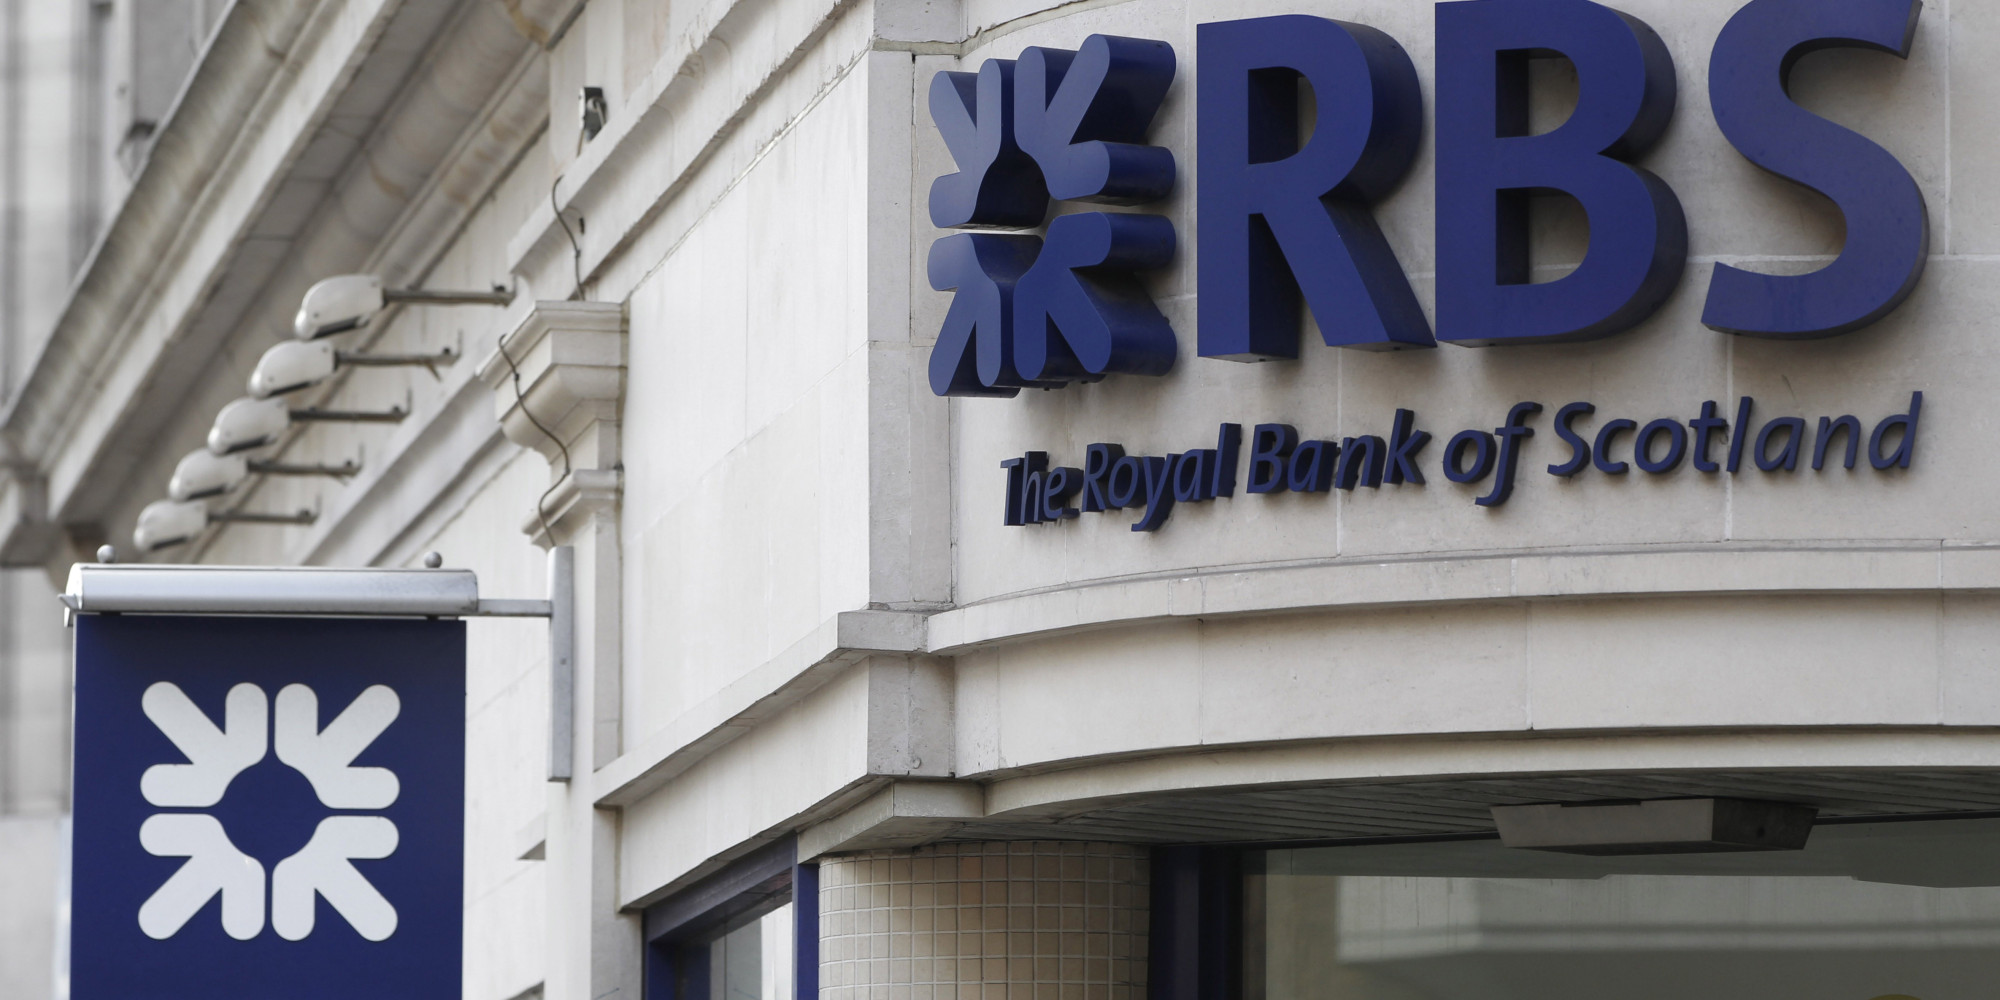 royal bank of scotland essay Royal bank of scotland is a uk based banking and financial services provider with operations in uk and ireland where it operates as ulster bank in england, it operates as the natwest brand while in scotland, it is still rbs where it has been serving scottish customers since 1727.